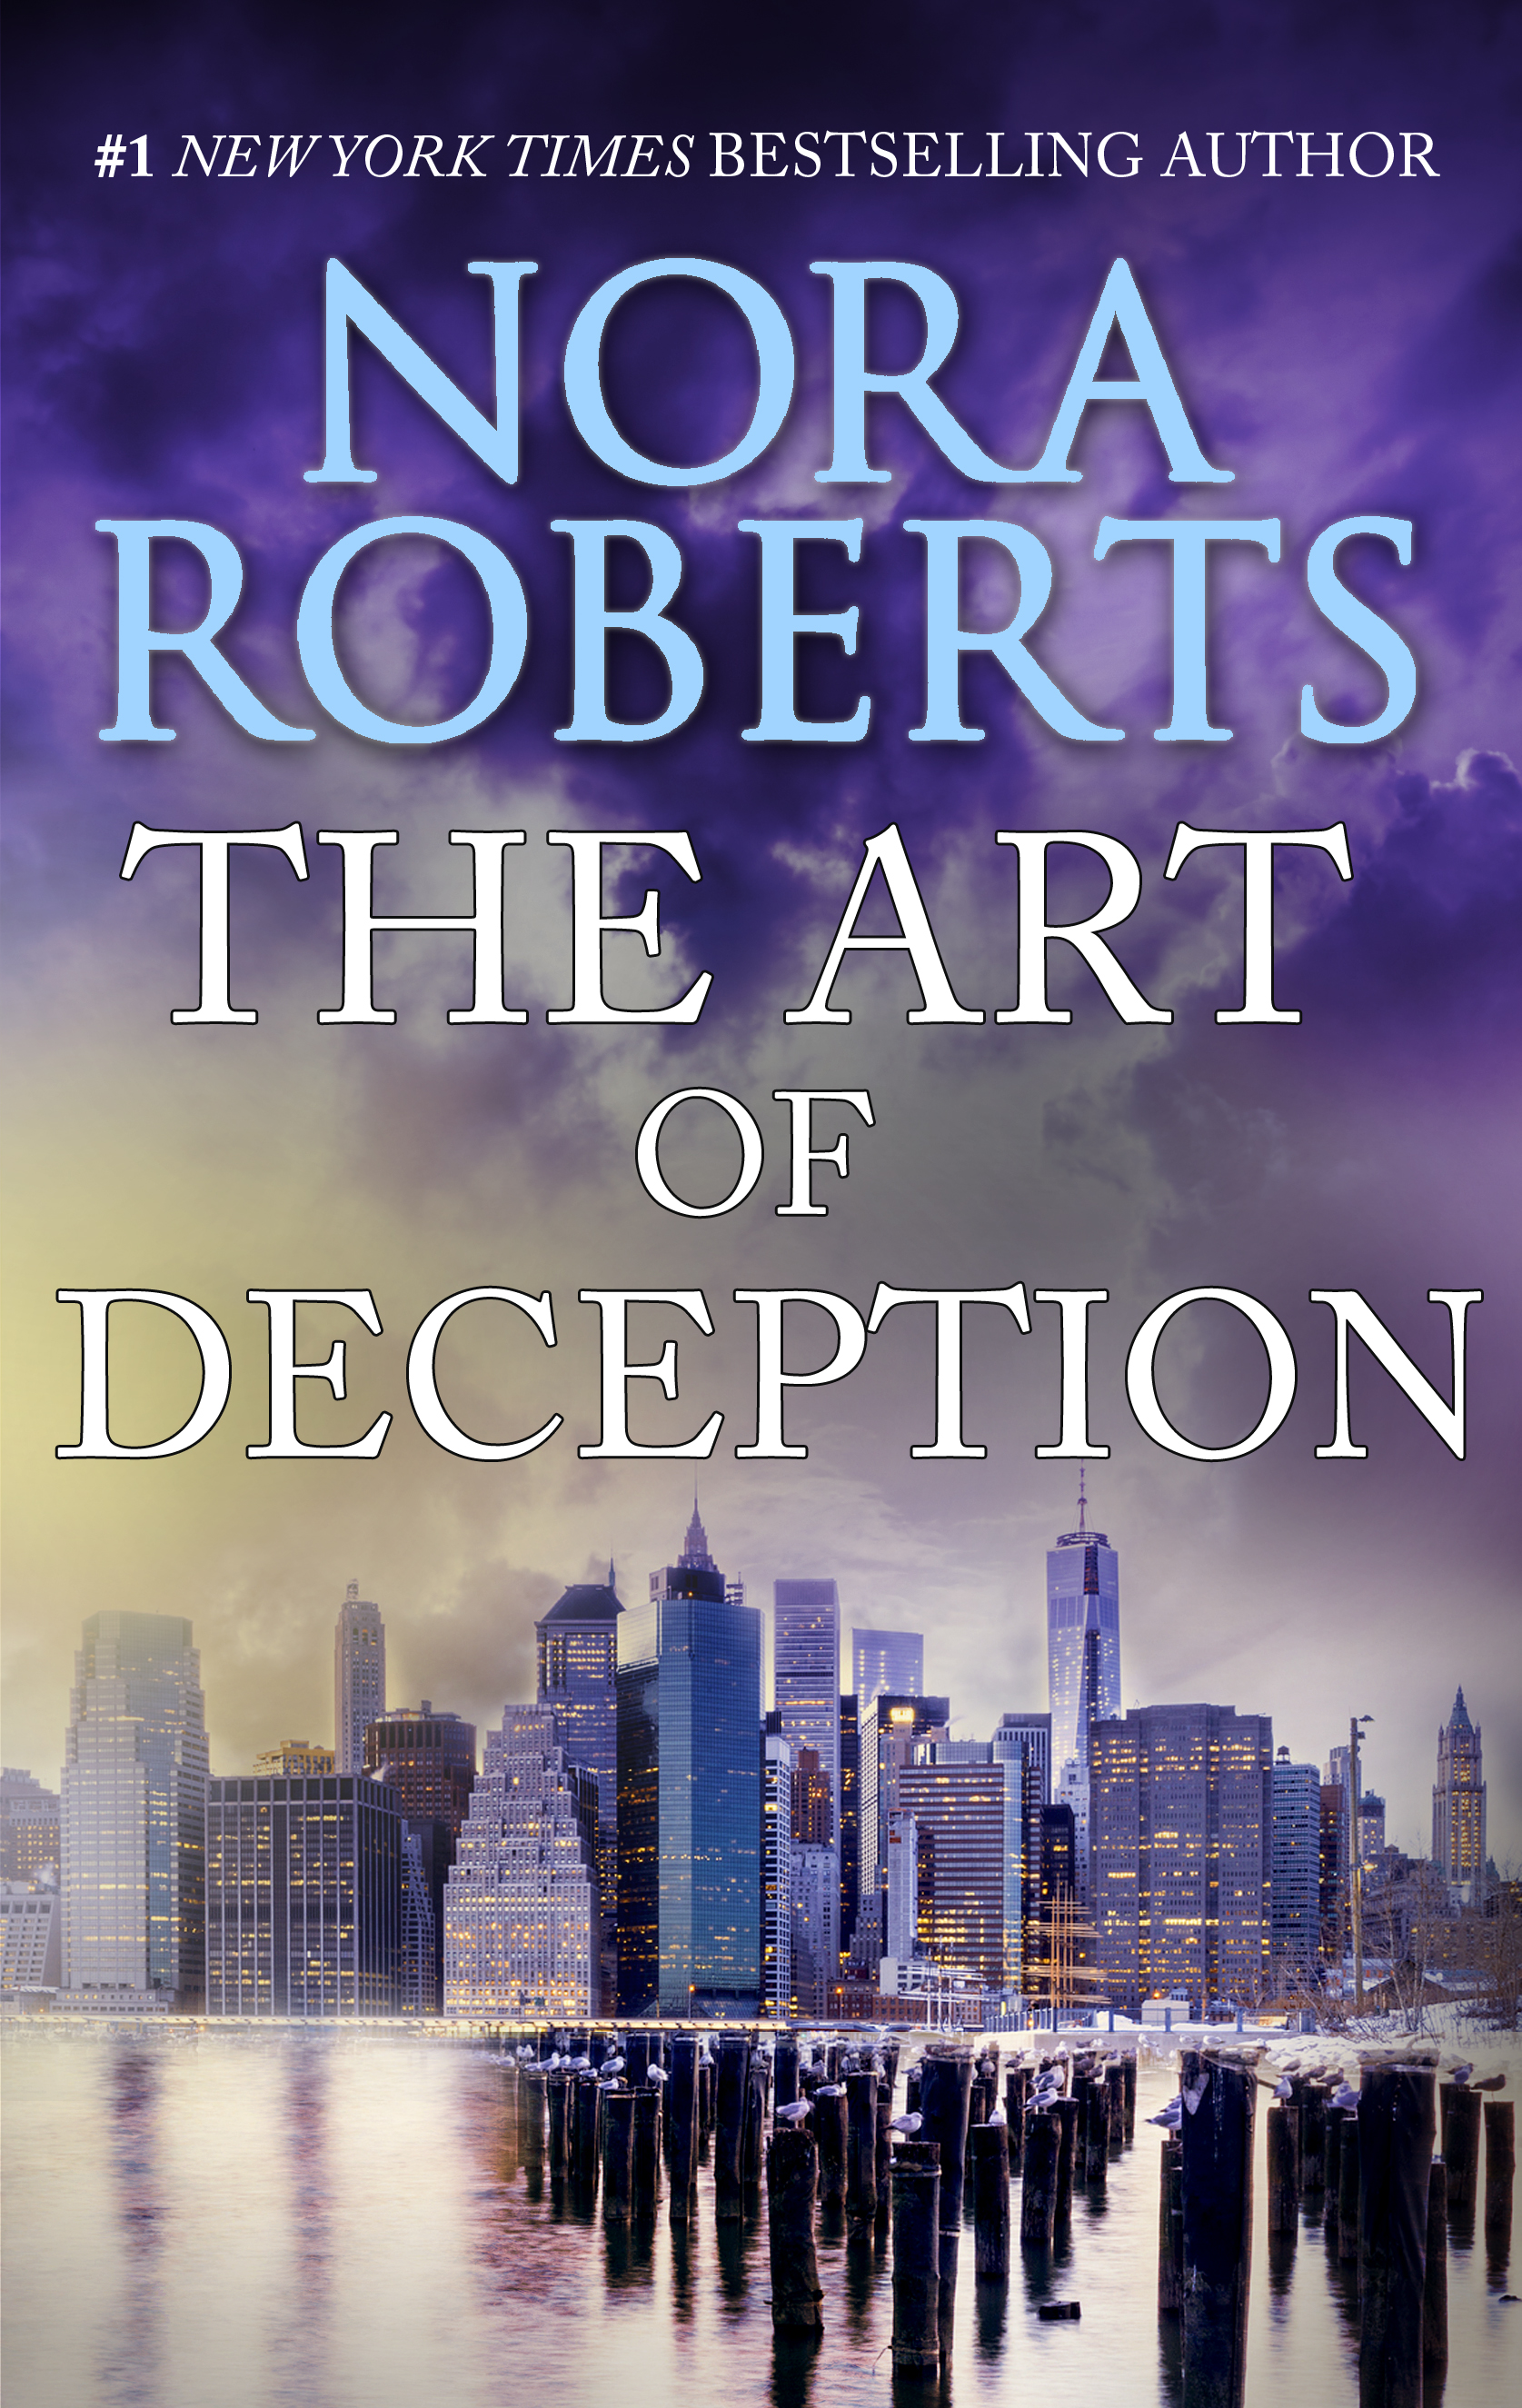 The Art of Deception A Bestselling Novel of Suspense and Obsession